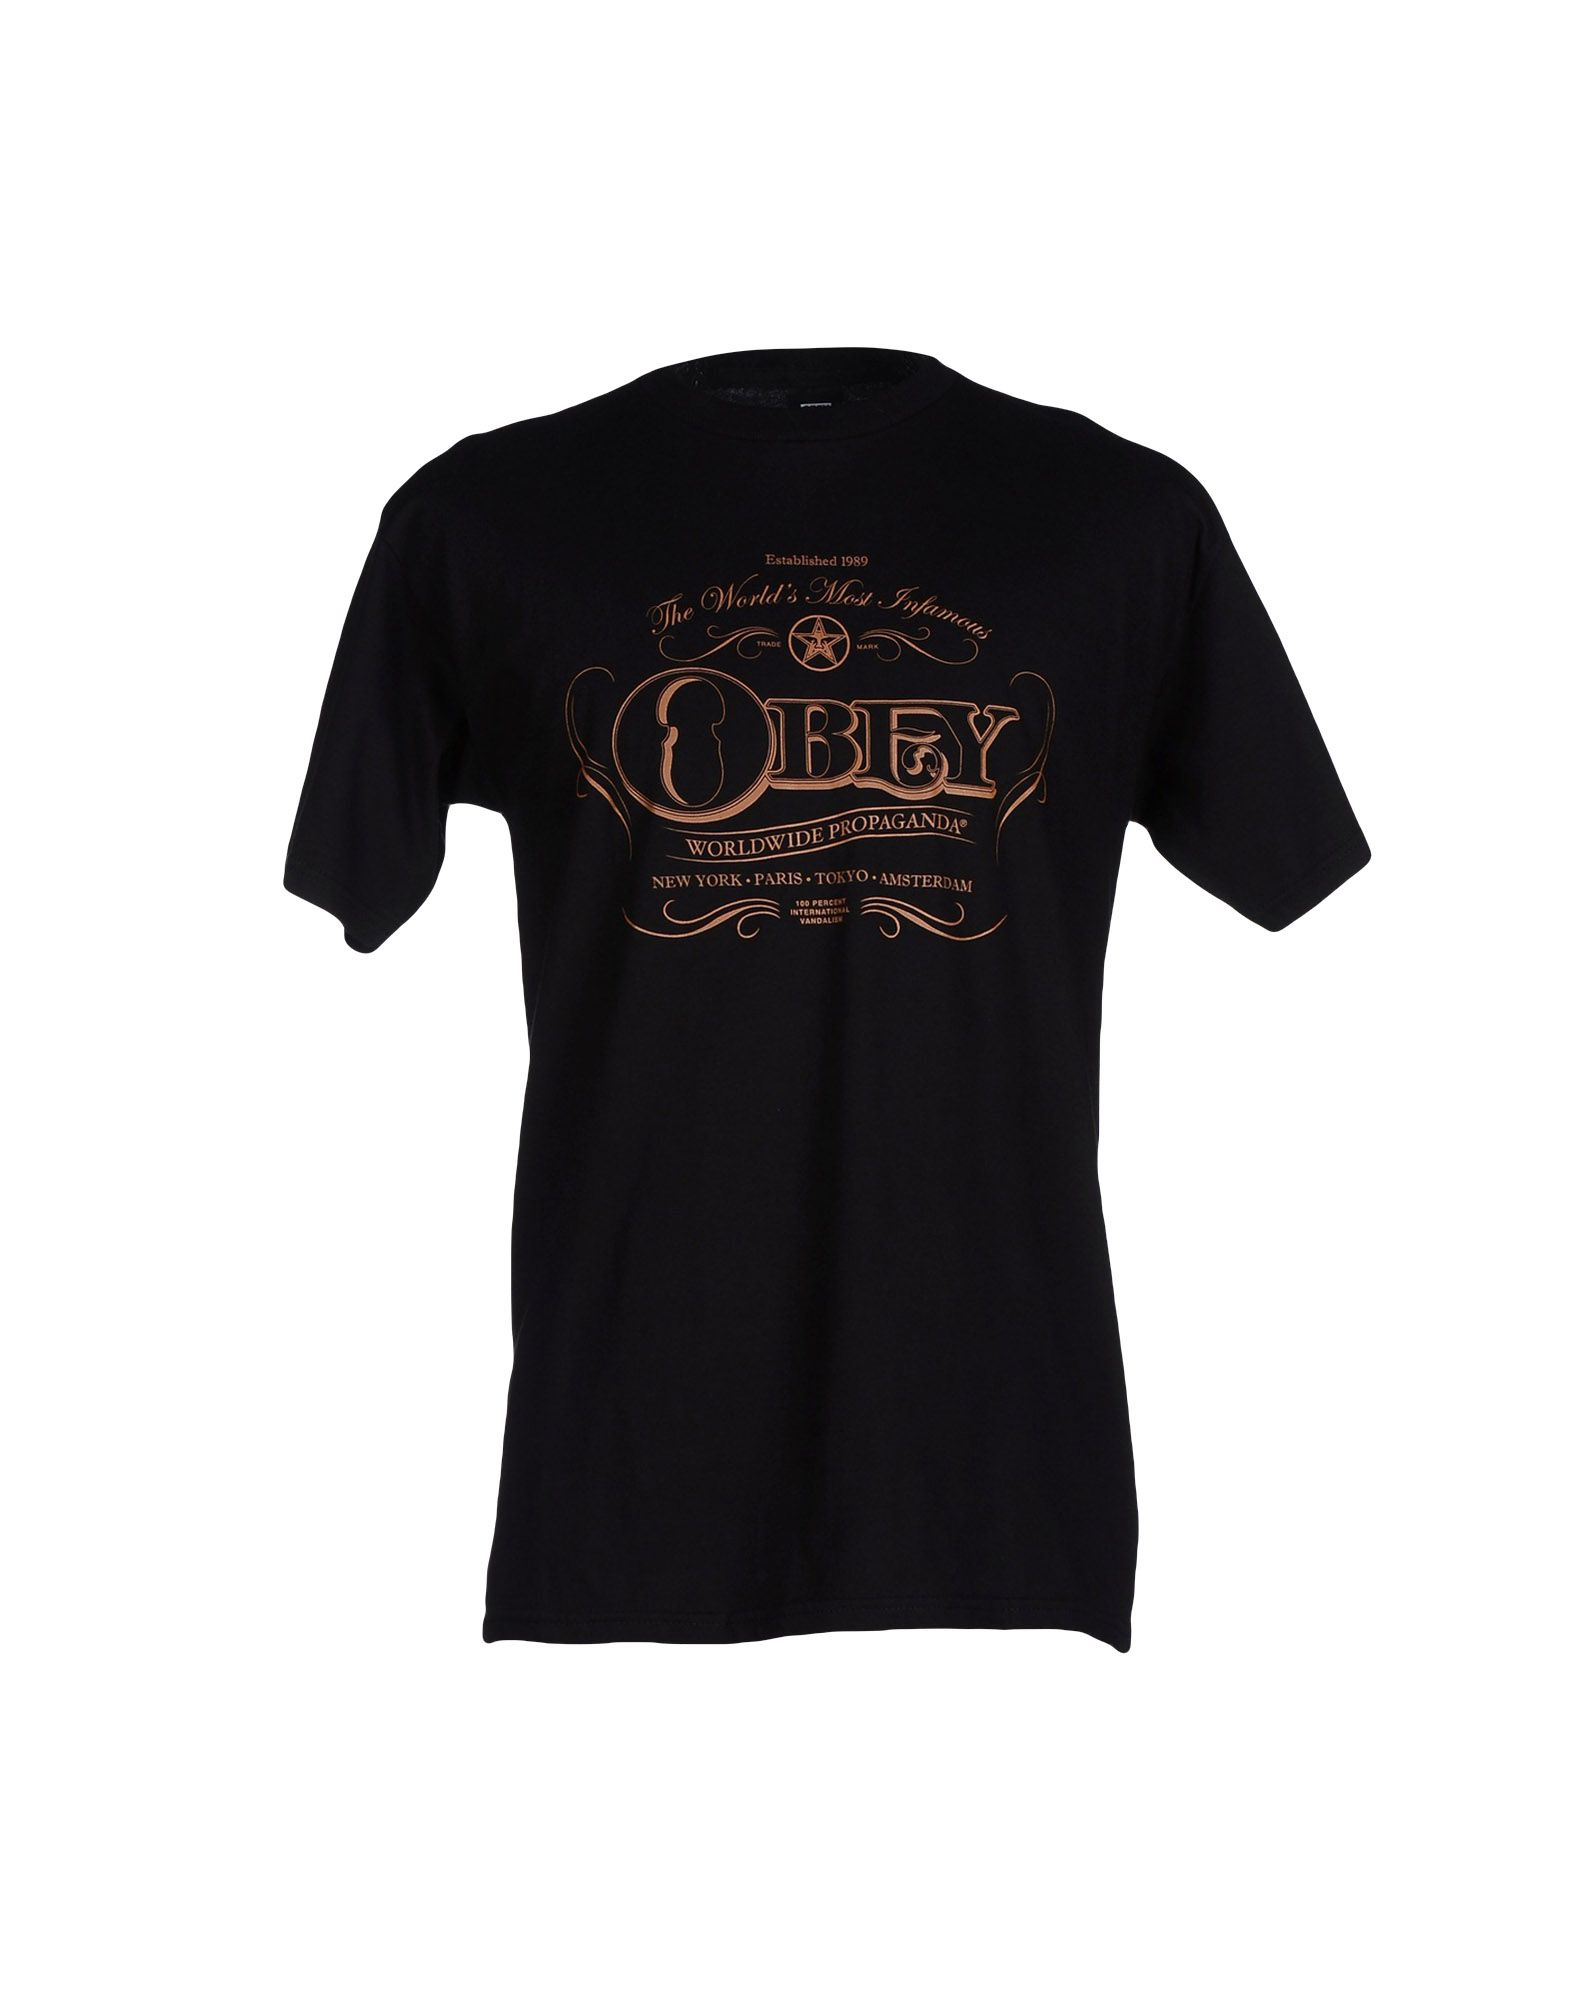 Obey t shirt in black for men lyst for Black obey t shirt